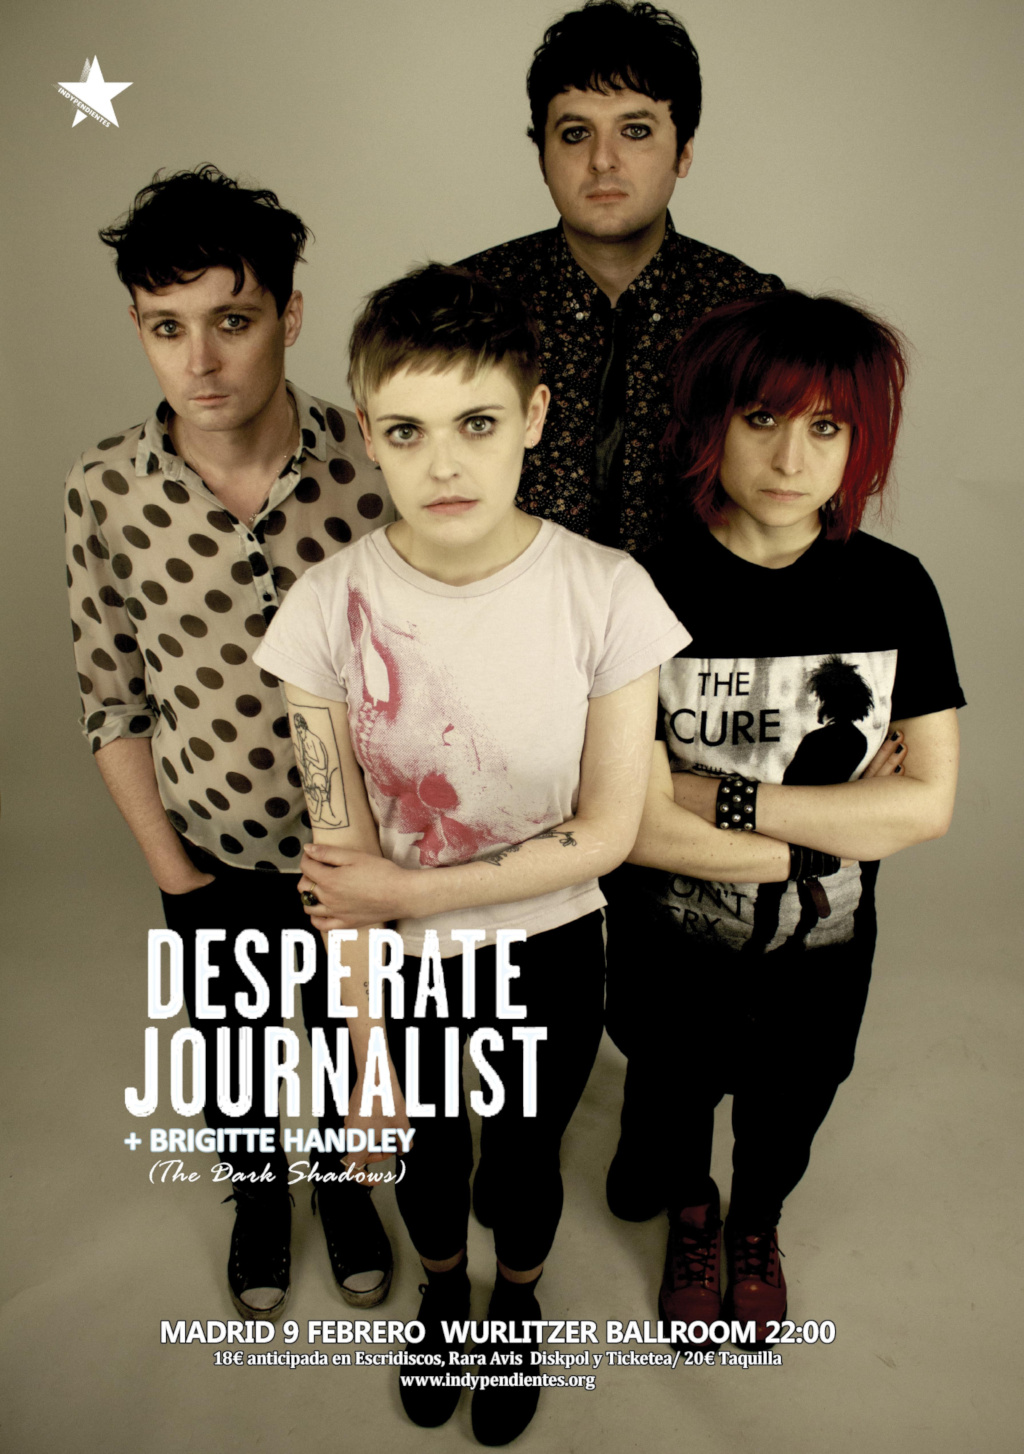 Desperate Journalist + Brigitte Handley